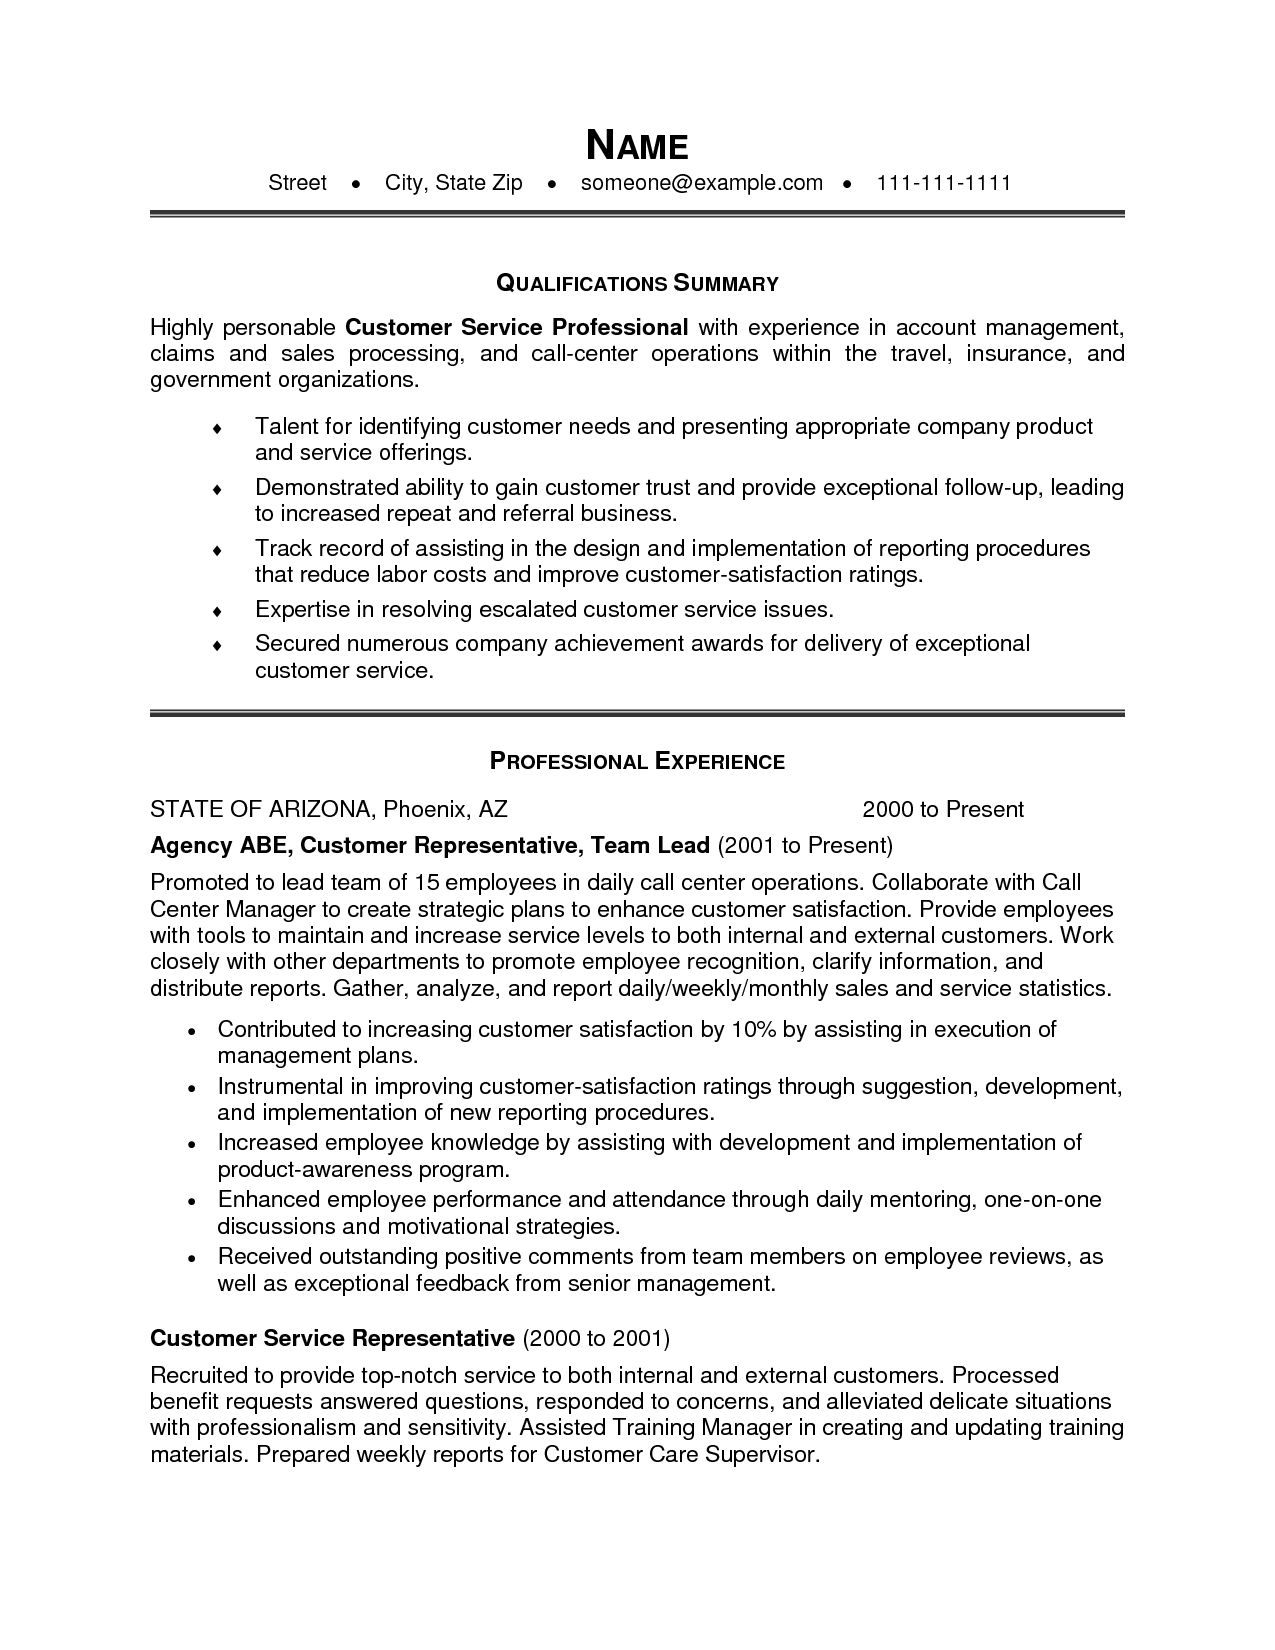 new customer service resume summary examples template professional paper color mensa on Resume Professional Customer Service Resume